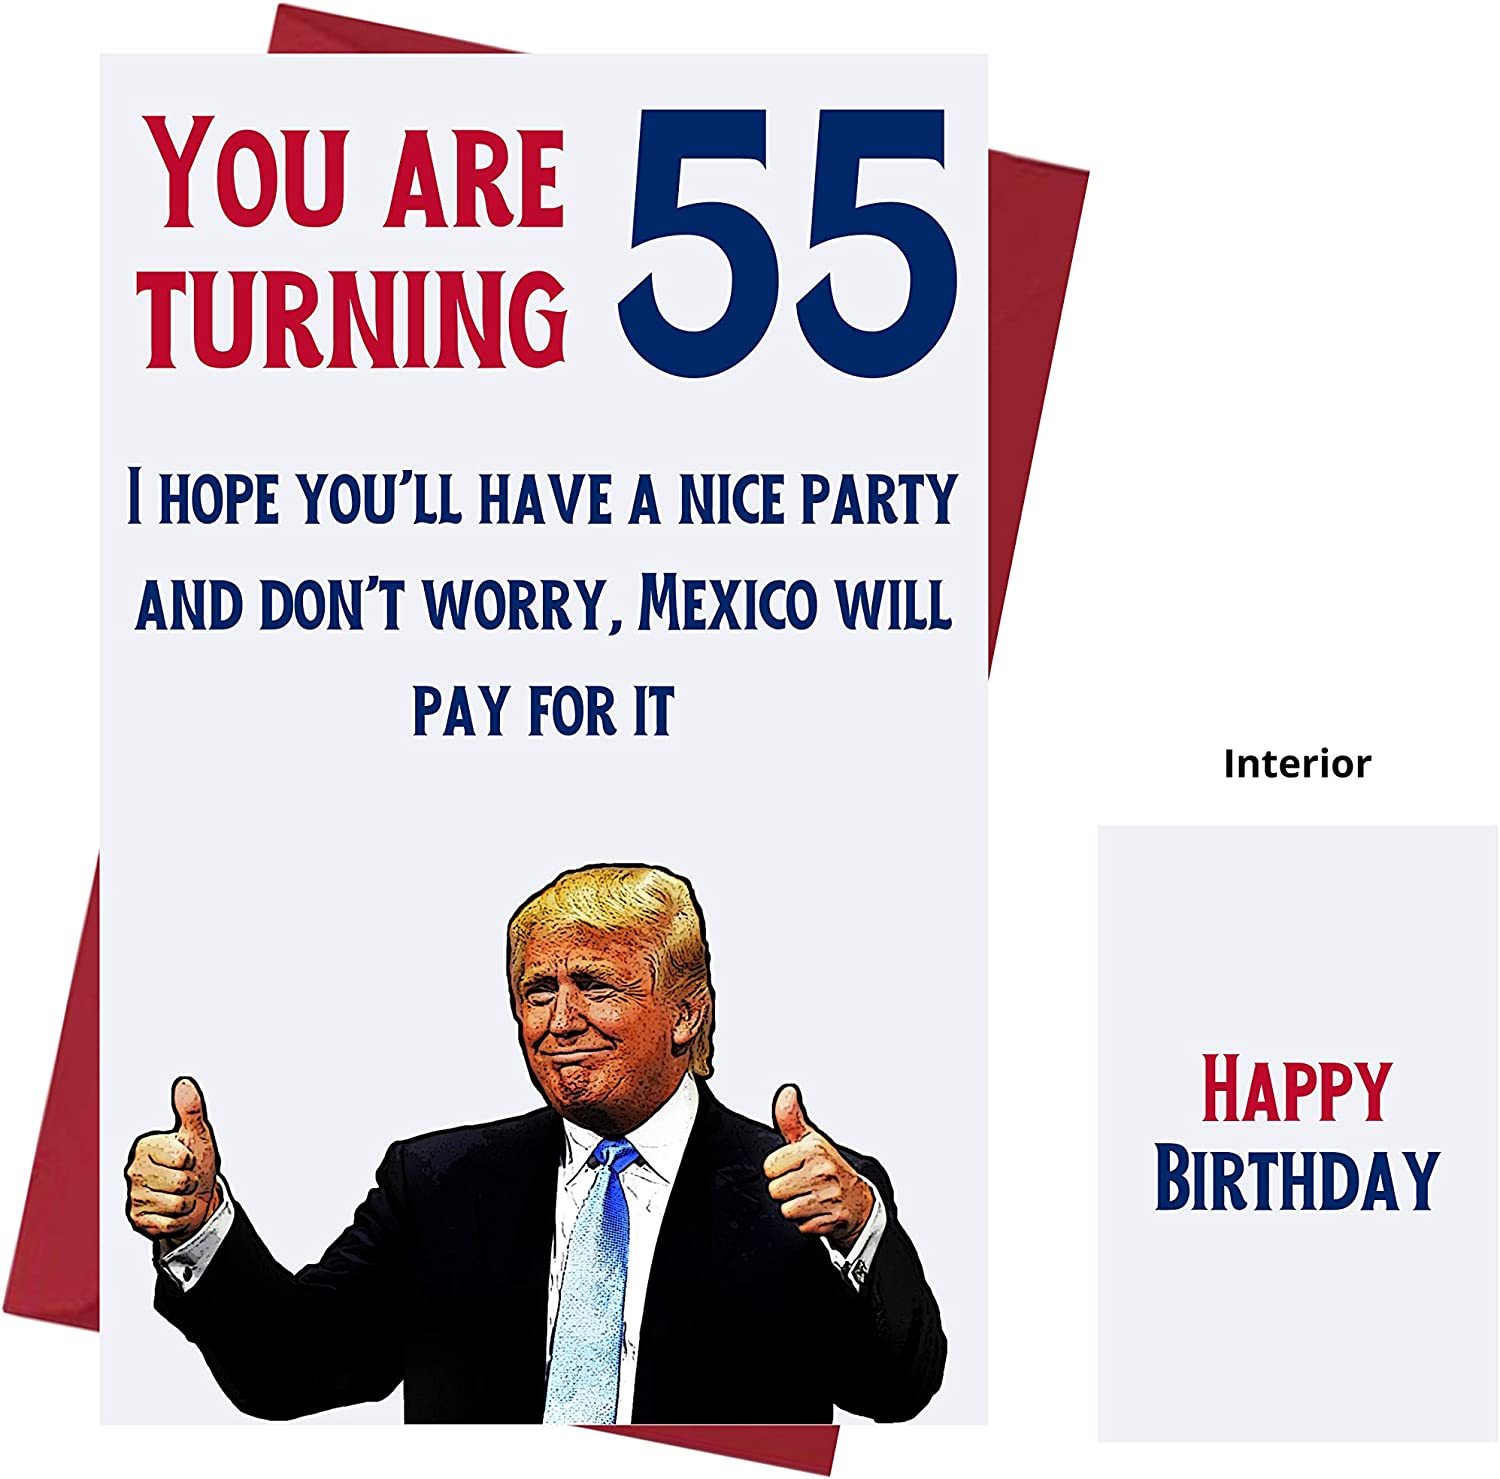 Amazon Com Let S Make 55 Great Again Donald Trump Sarcasm 55th Birthday Cards For Women Men Friends Coworkers Etc Donald Trump Birthday Cards 55 Years Old 55th Birthday Cards 55th Anniversary Office Products